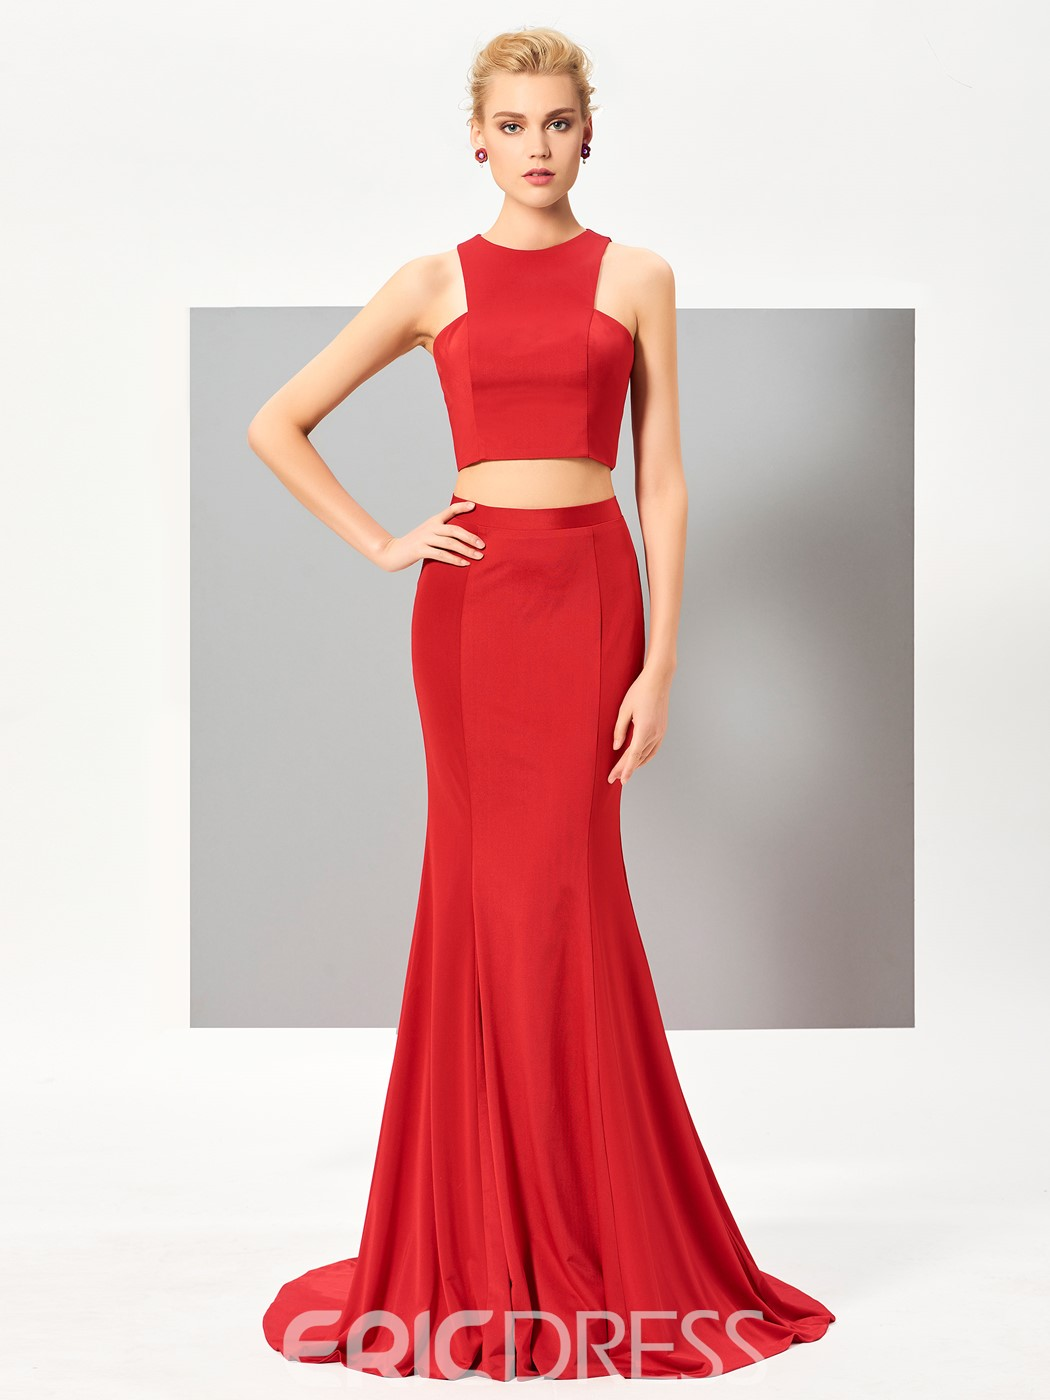 Ericdress Chic Two Pieces Zipper-Up Back Mermaid Evening Dress With Court Train